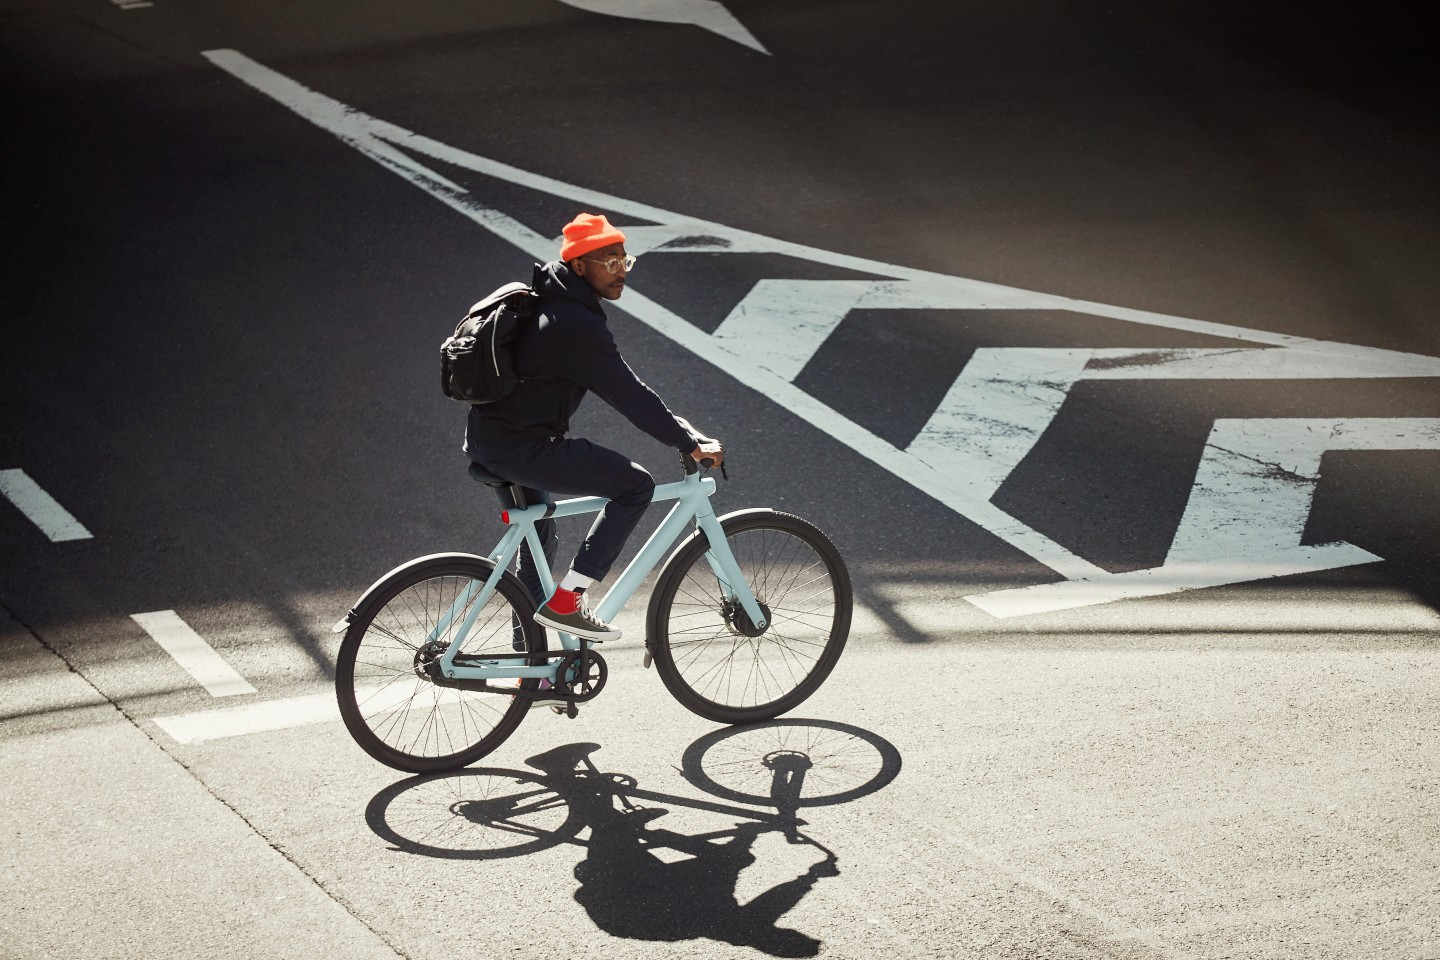 The Vanmoof S3 comes with a 250-W (EU or 350-W (US) front hub motor that provides four levels of pedal assist